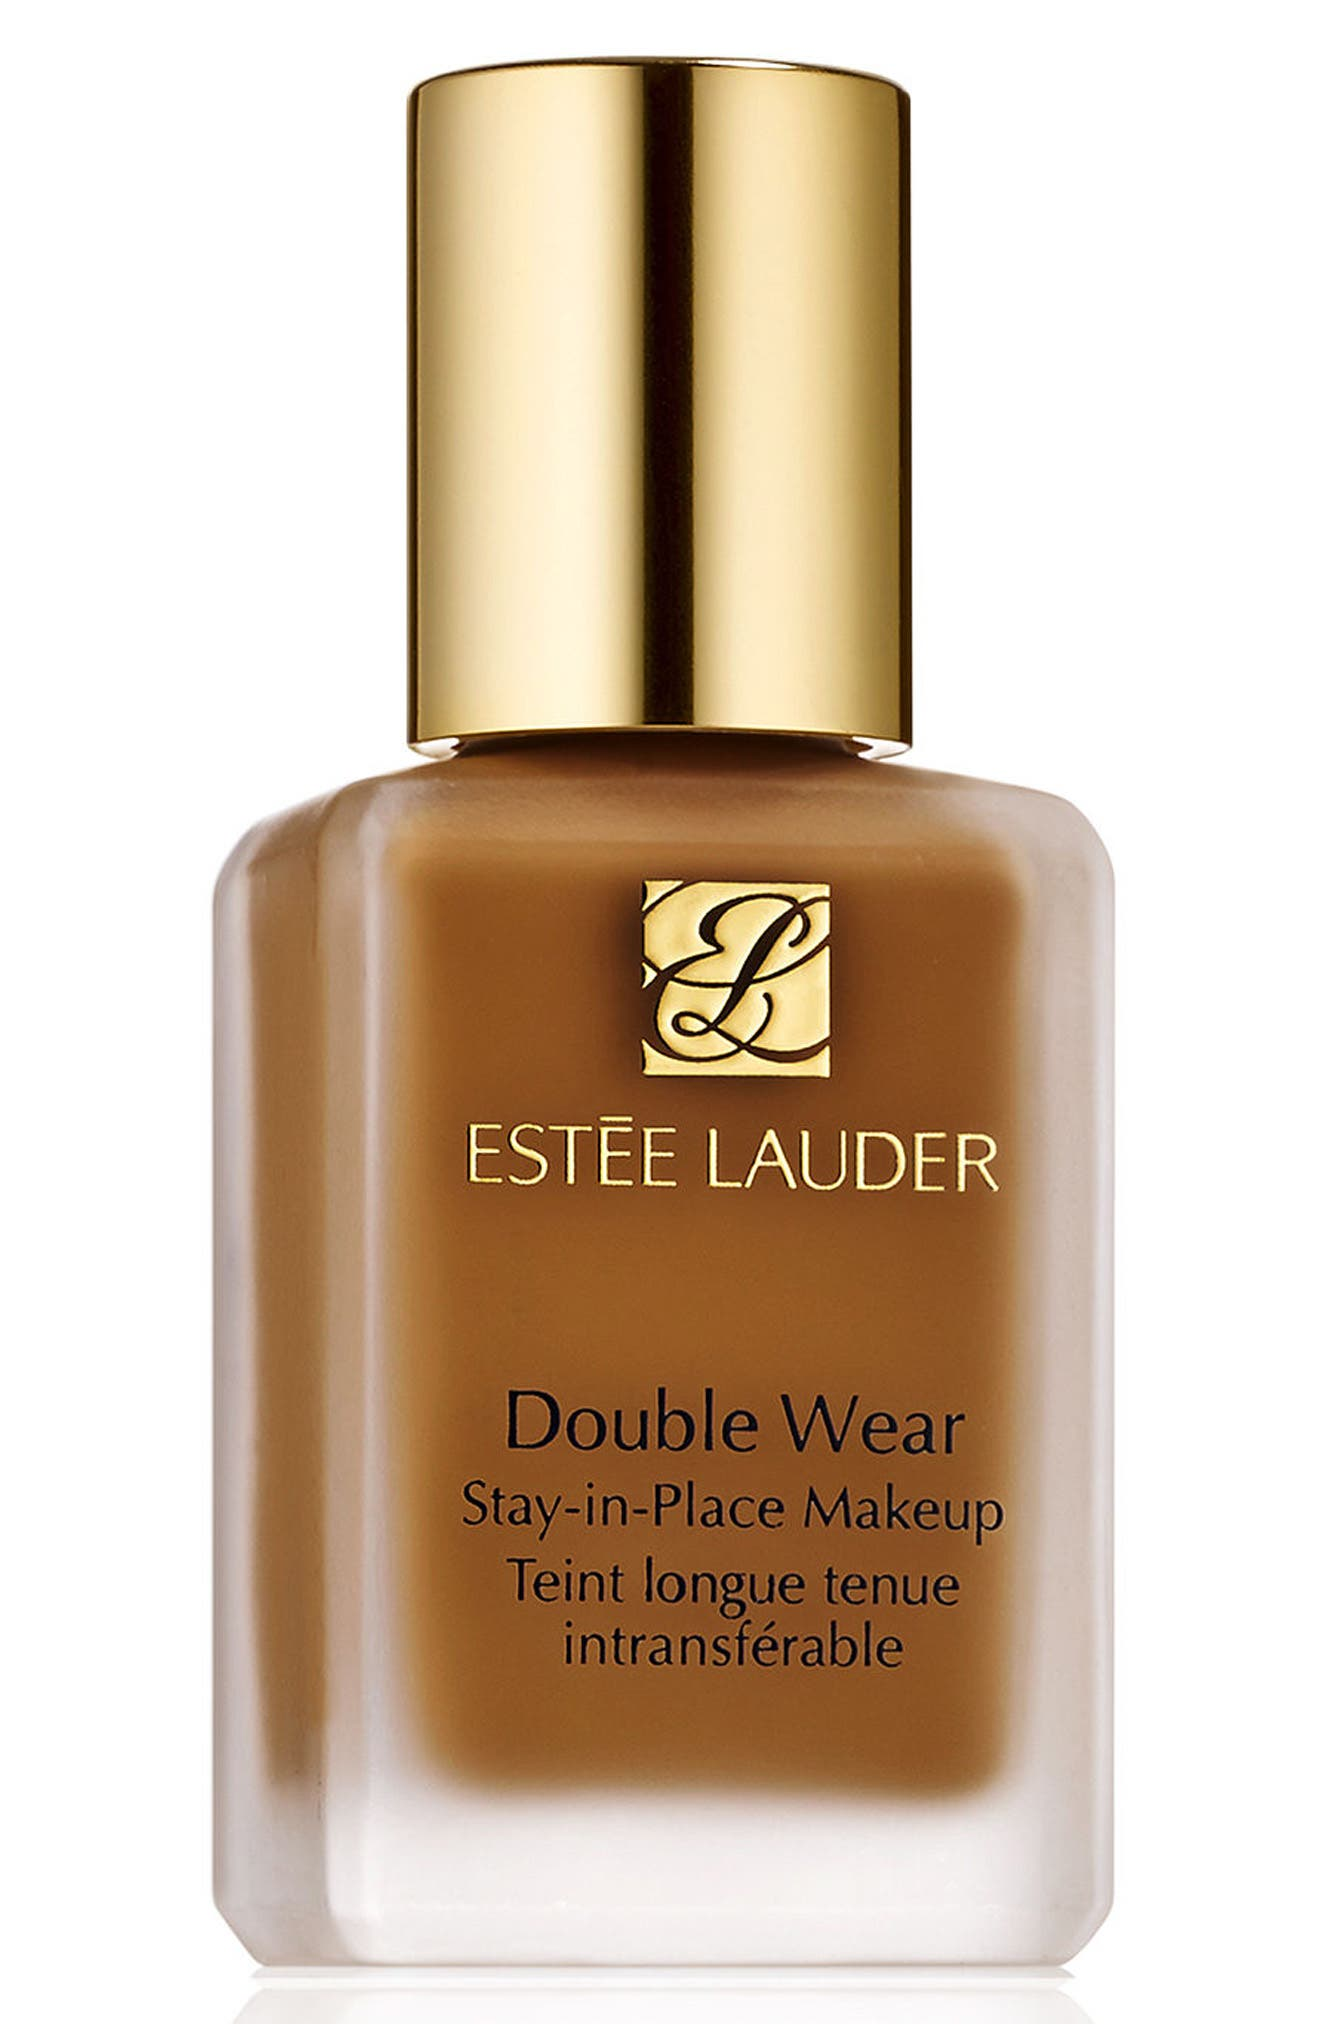 Estee Lauder Double wear stay-in-place makeup foundation